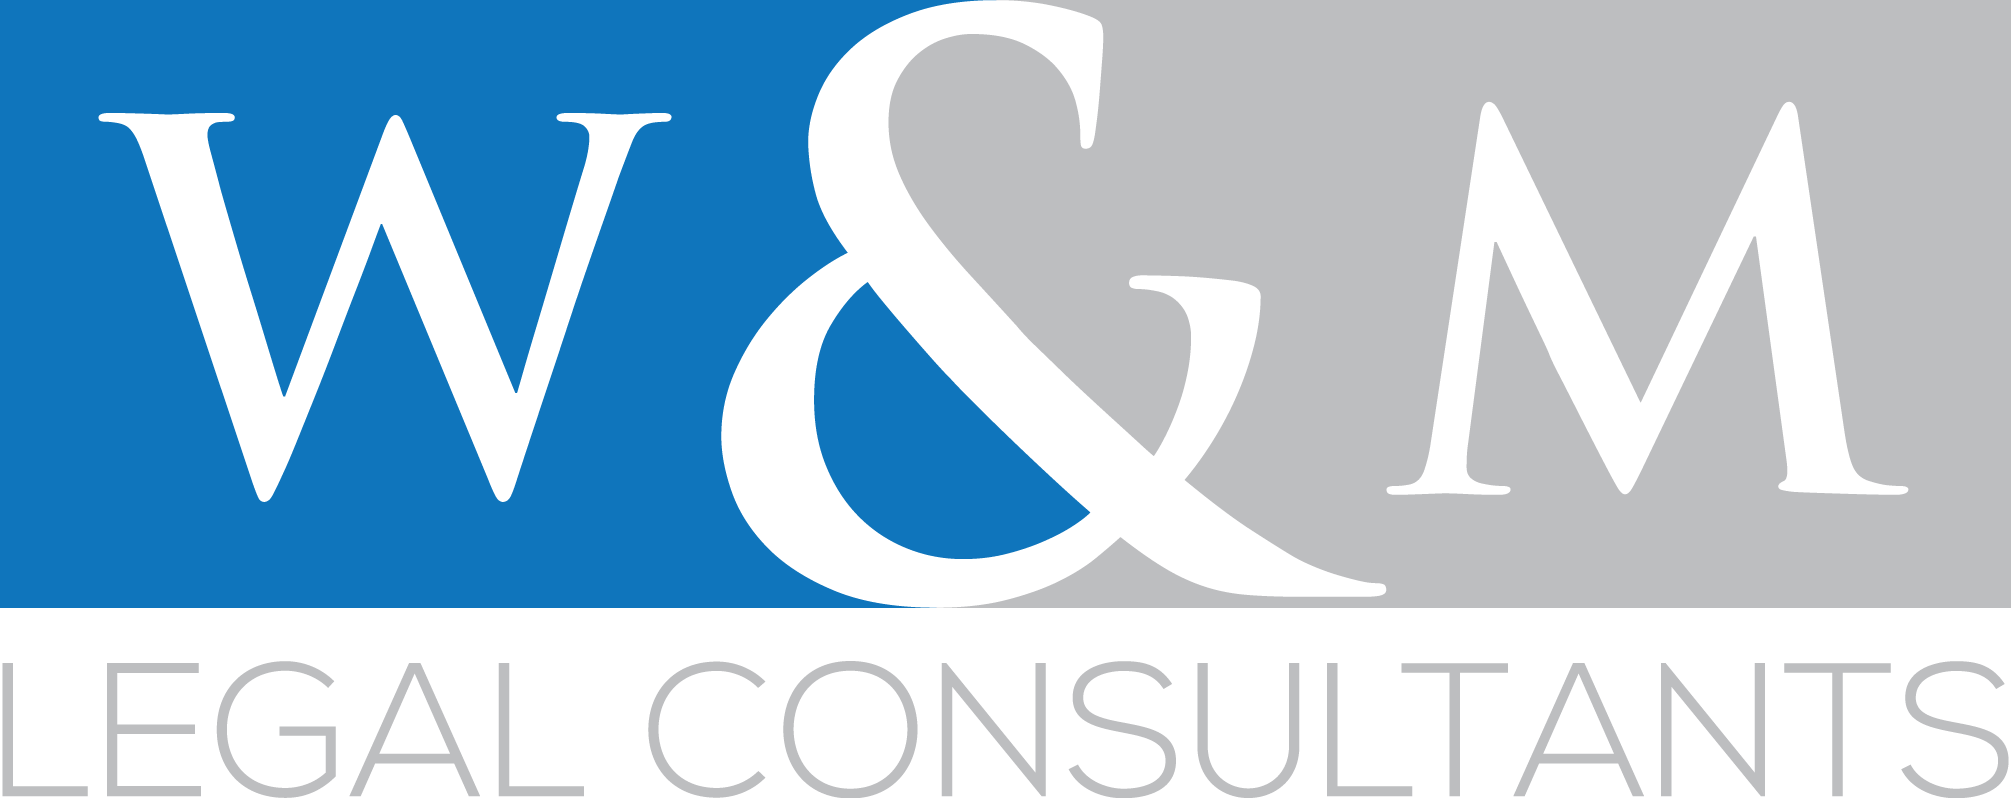 W & M Legal Consultants logo